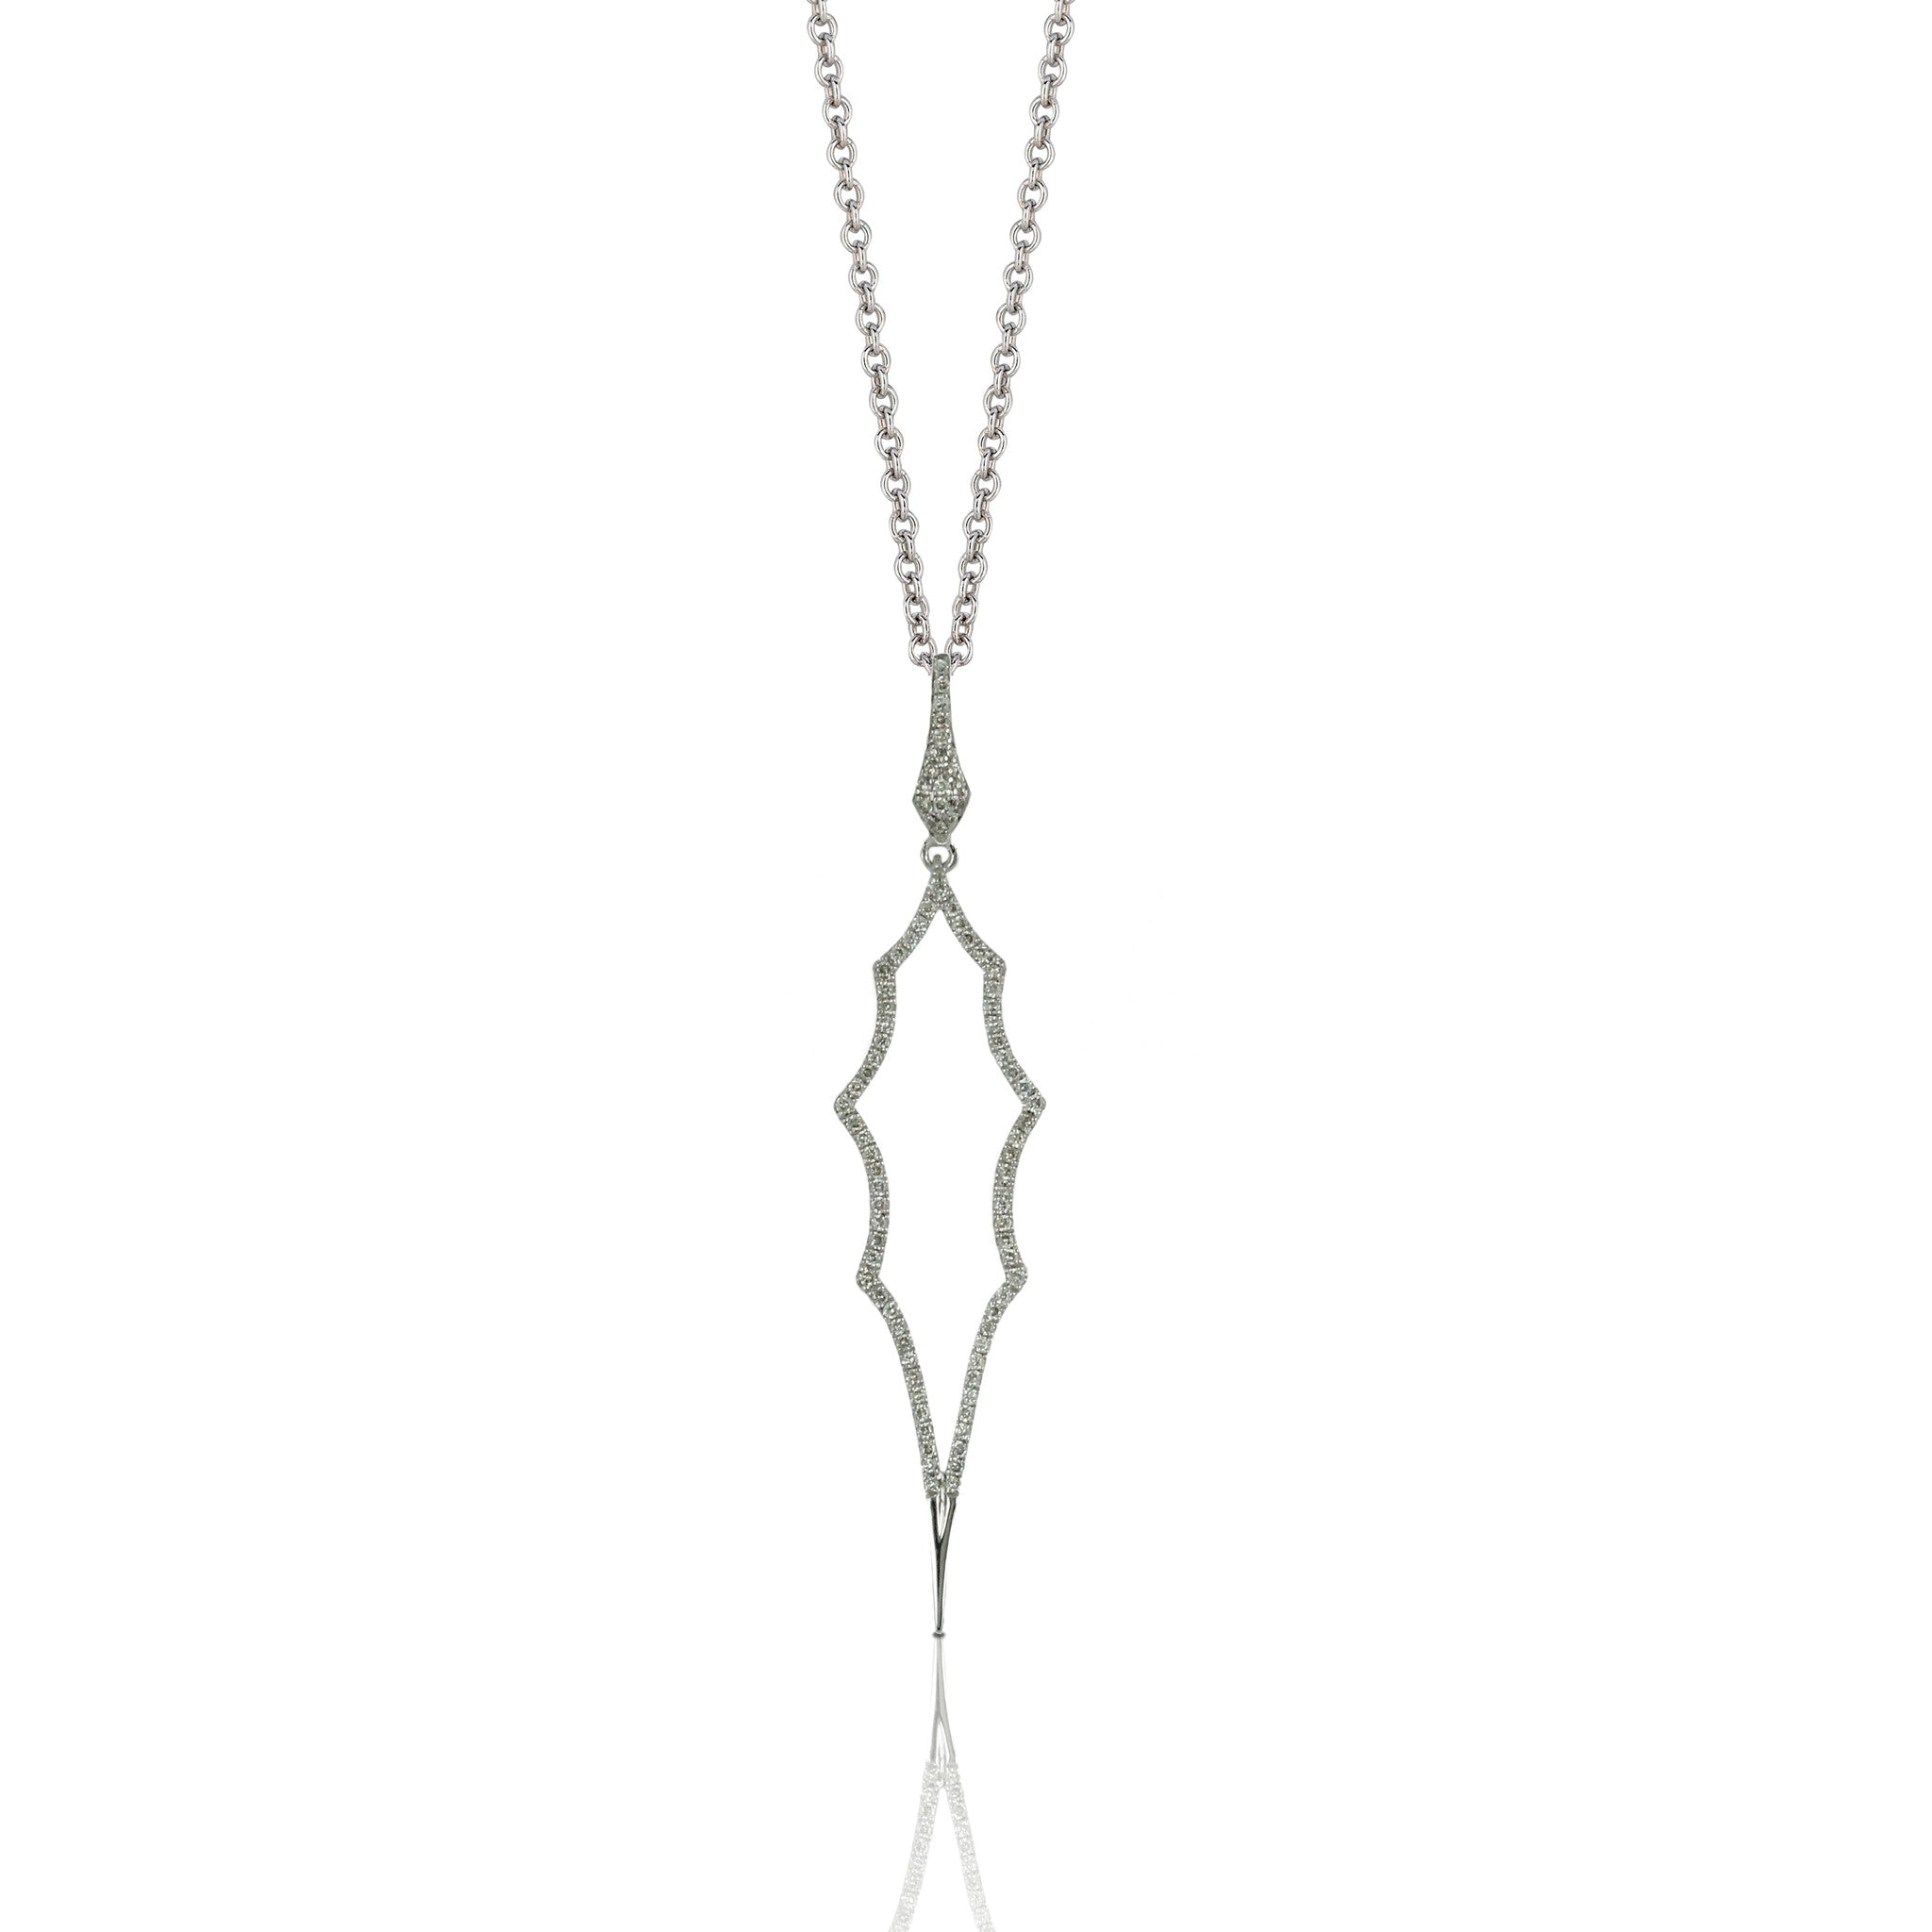 Doves Ladies' 18k White Gold Diamond Pendant with Geometric Design by Doron Paloma